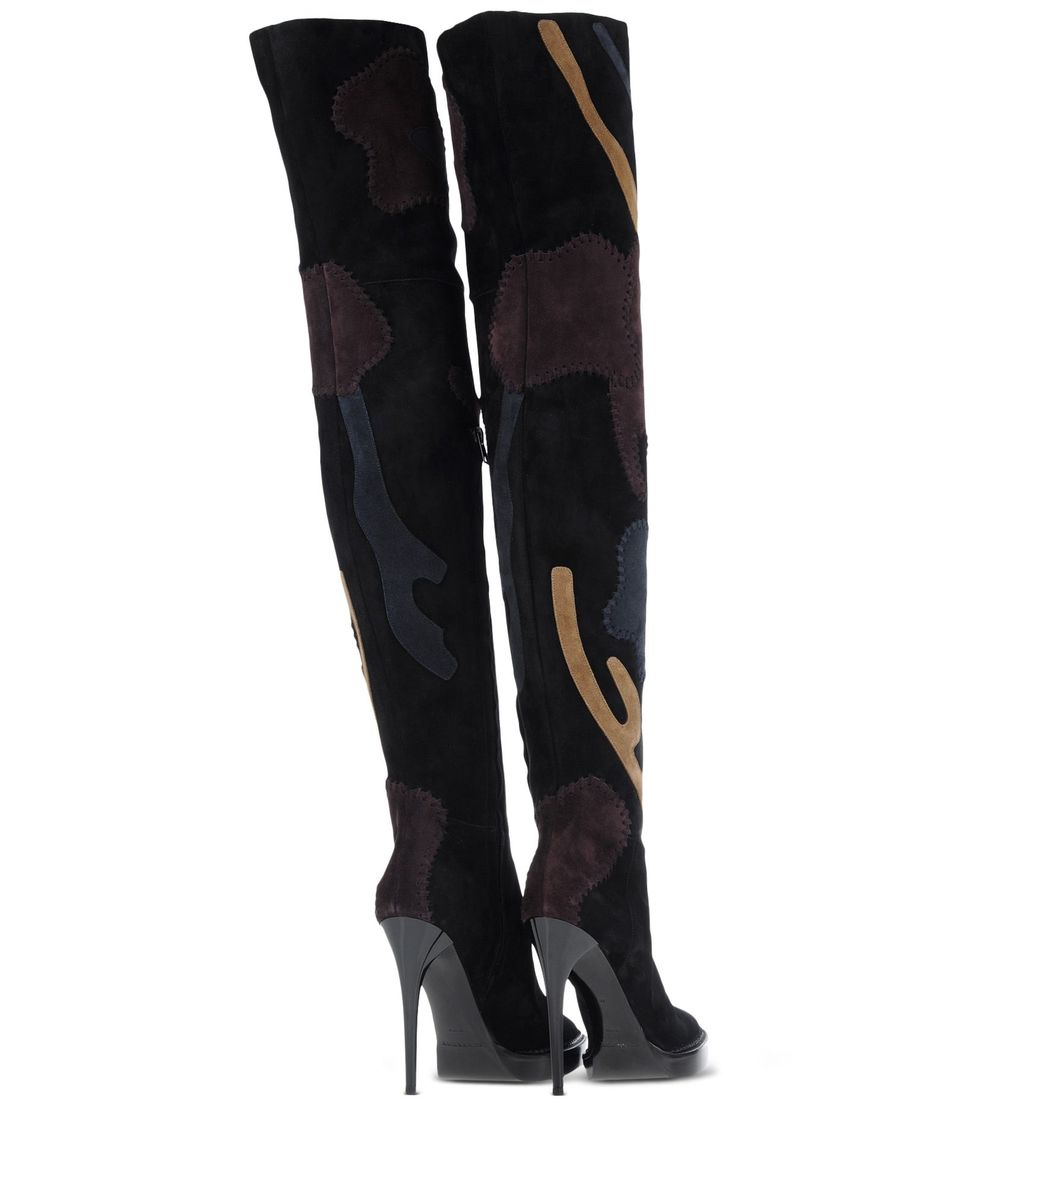 ShopBazaar Burberry Prorsum Patchwork Over-The-Knee Boot ANGLED